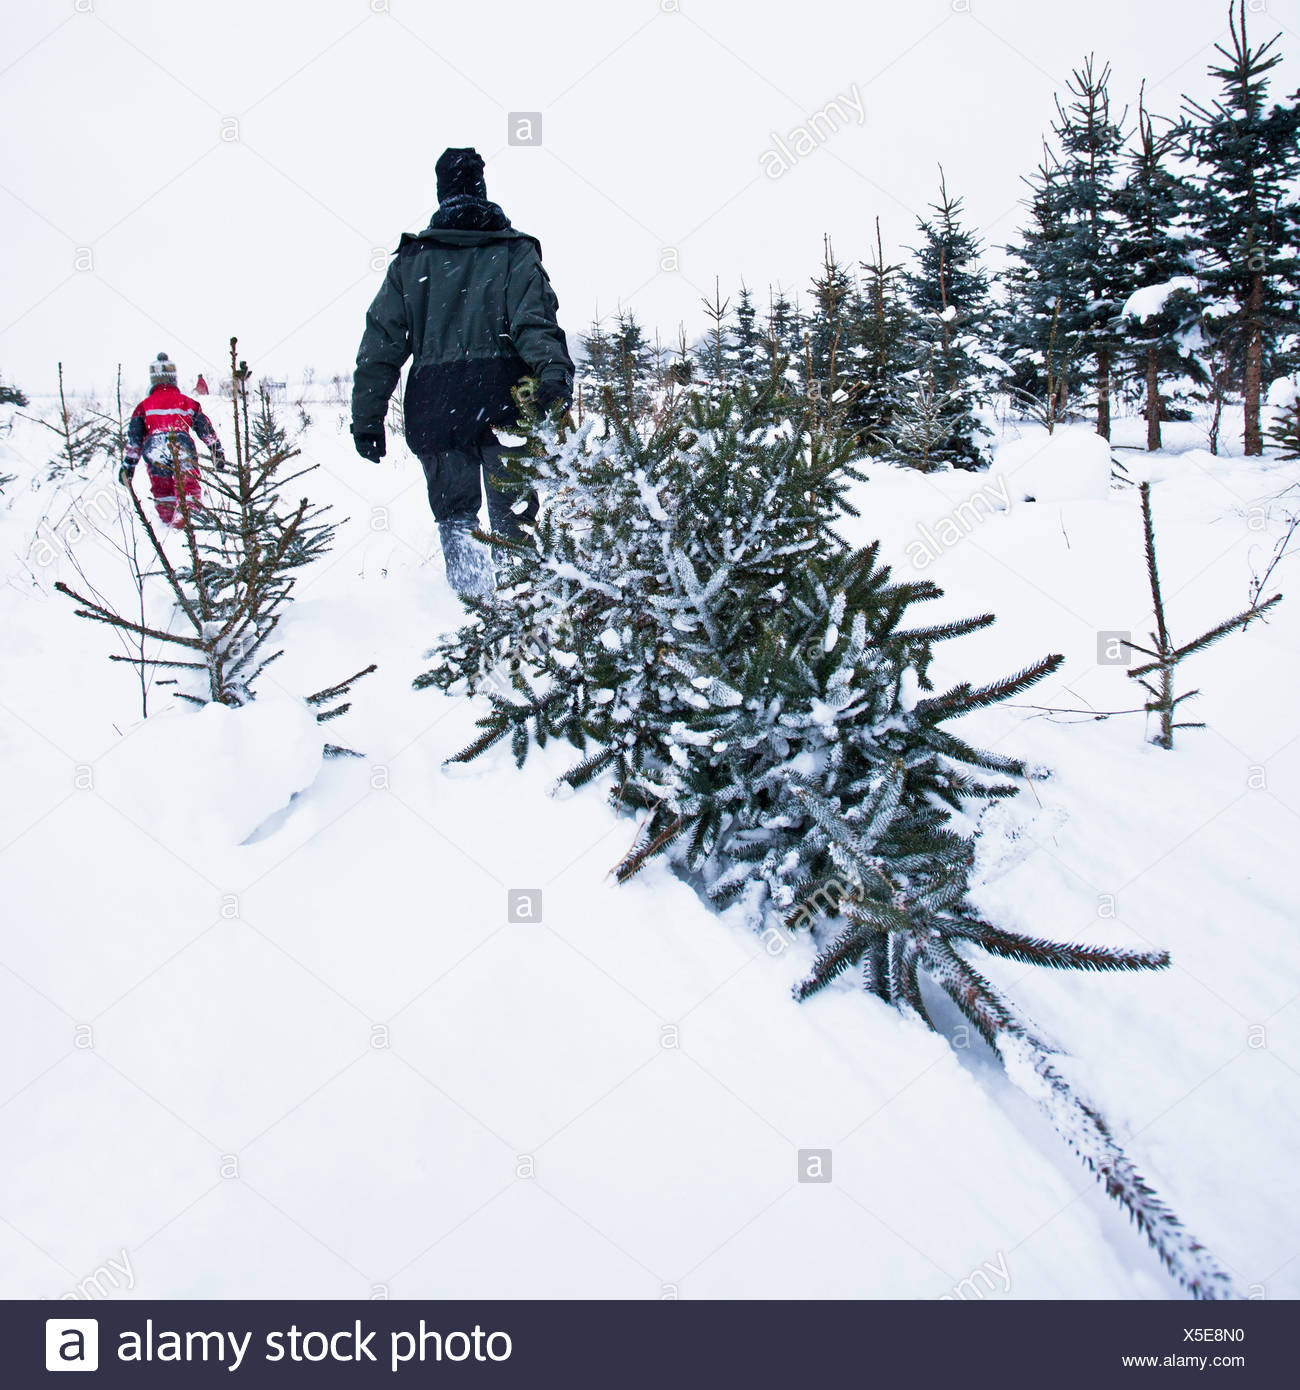 Person pulling Christmas tree - Stock Image